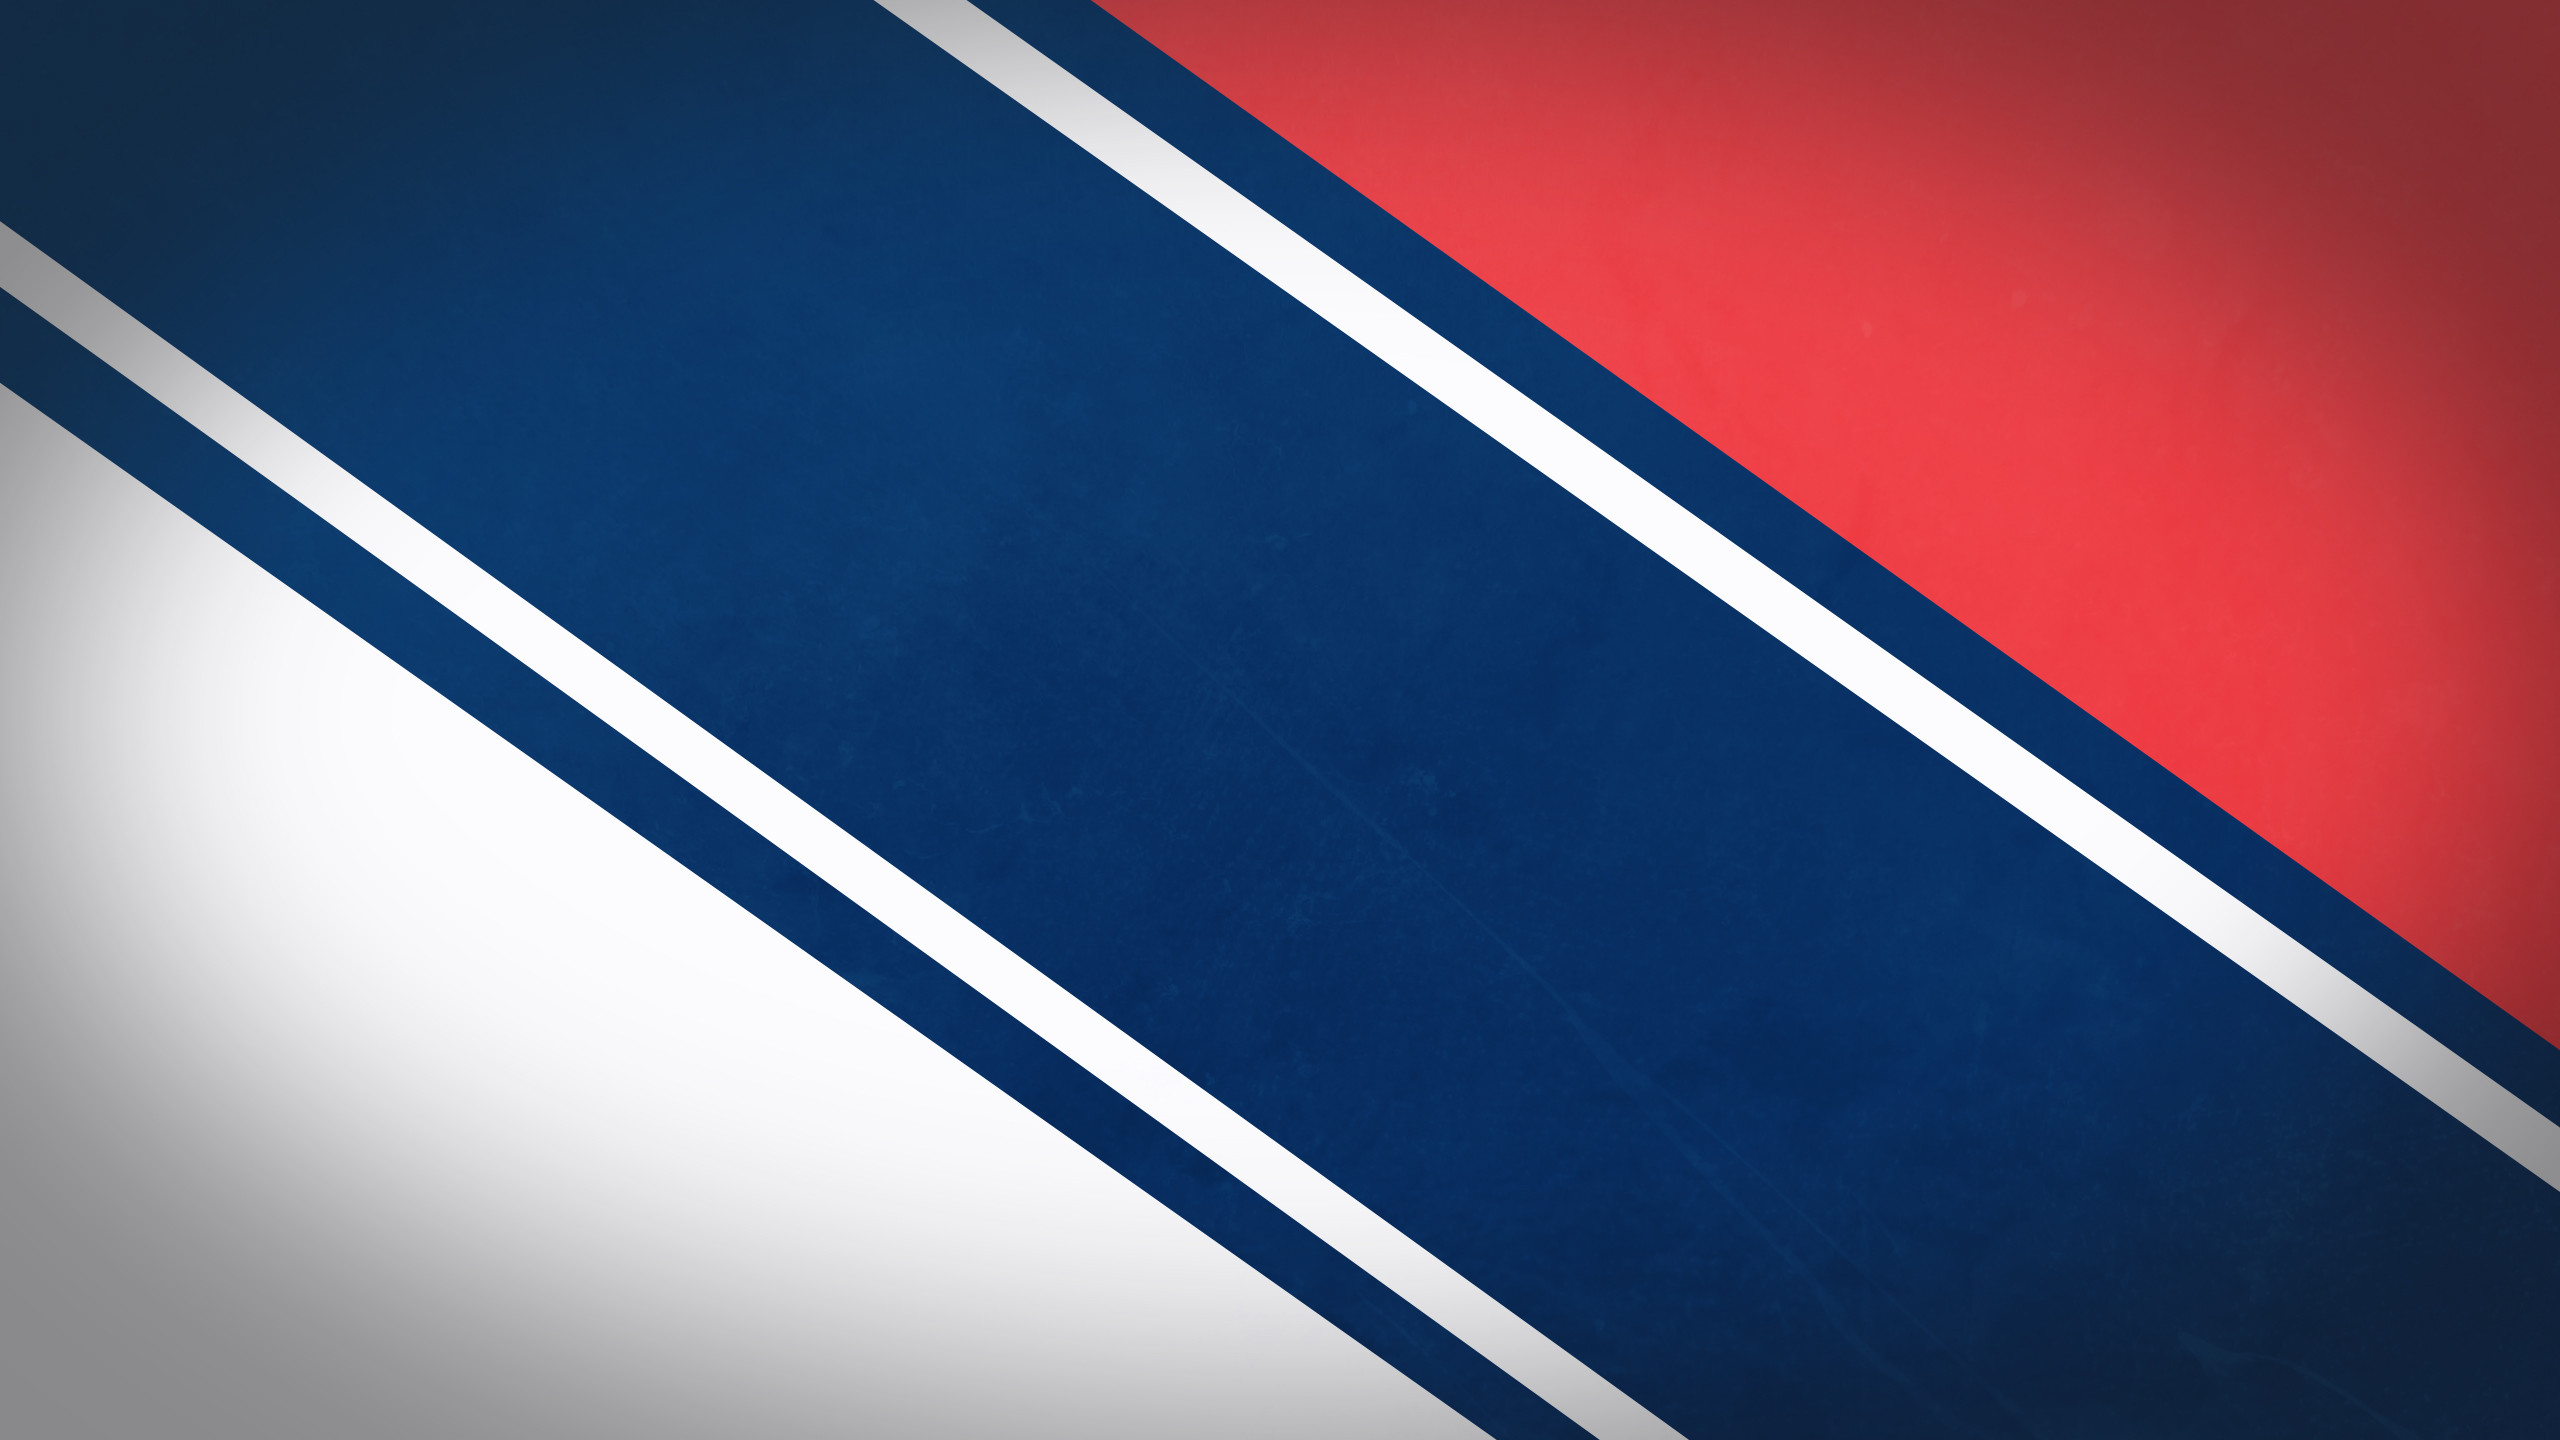 Ny Rangers Wallpaper Some minimal wallpapers 2560x1440